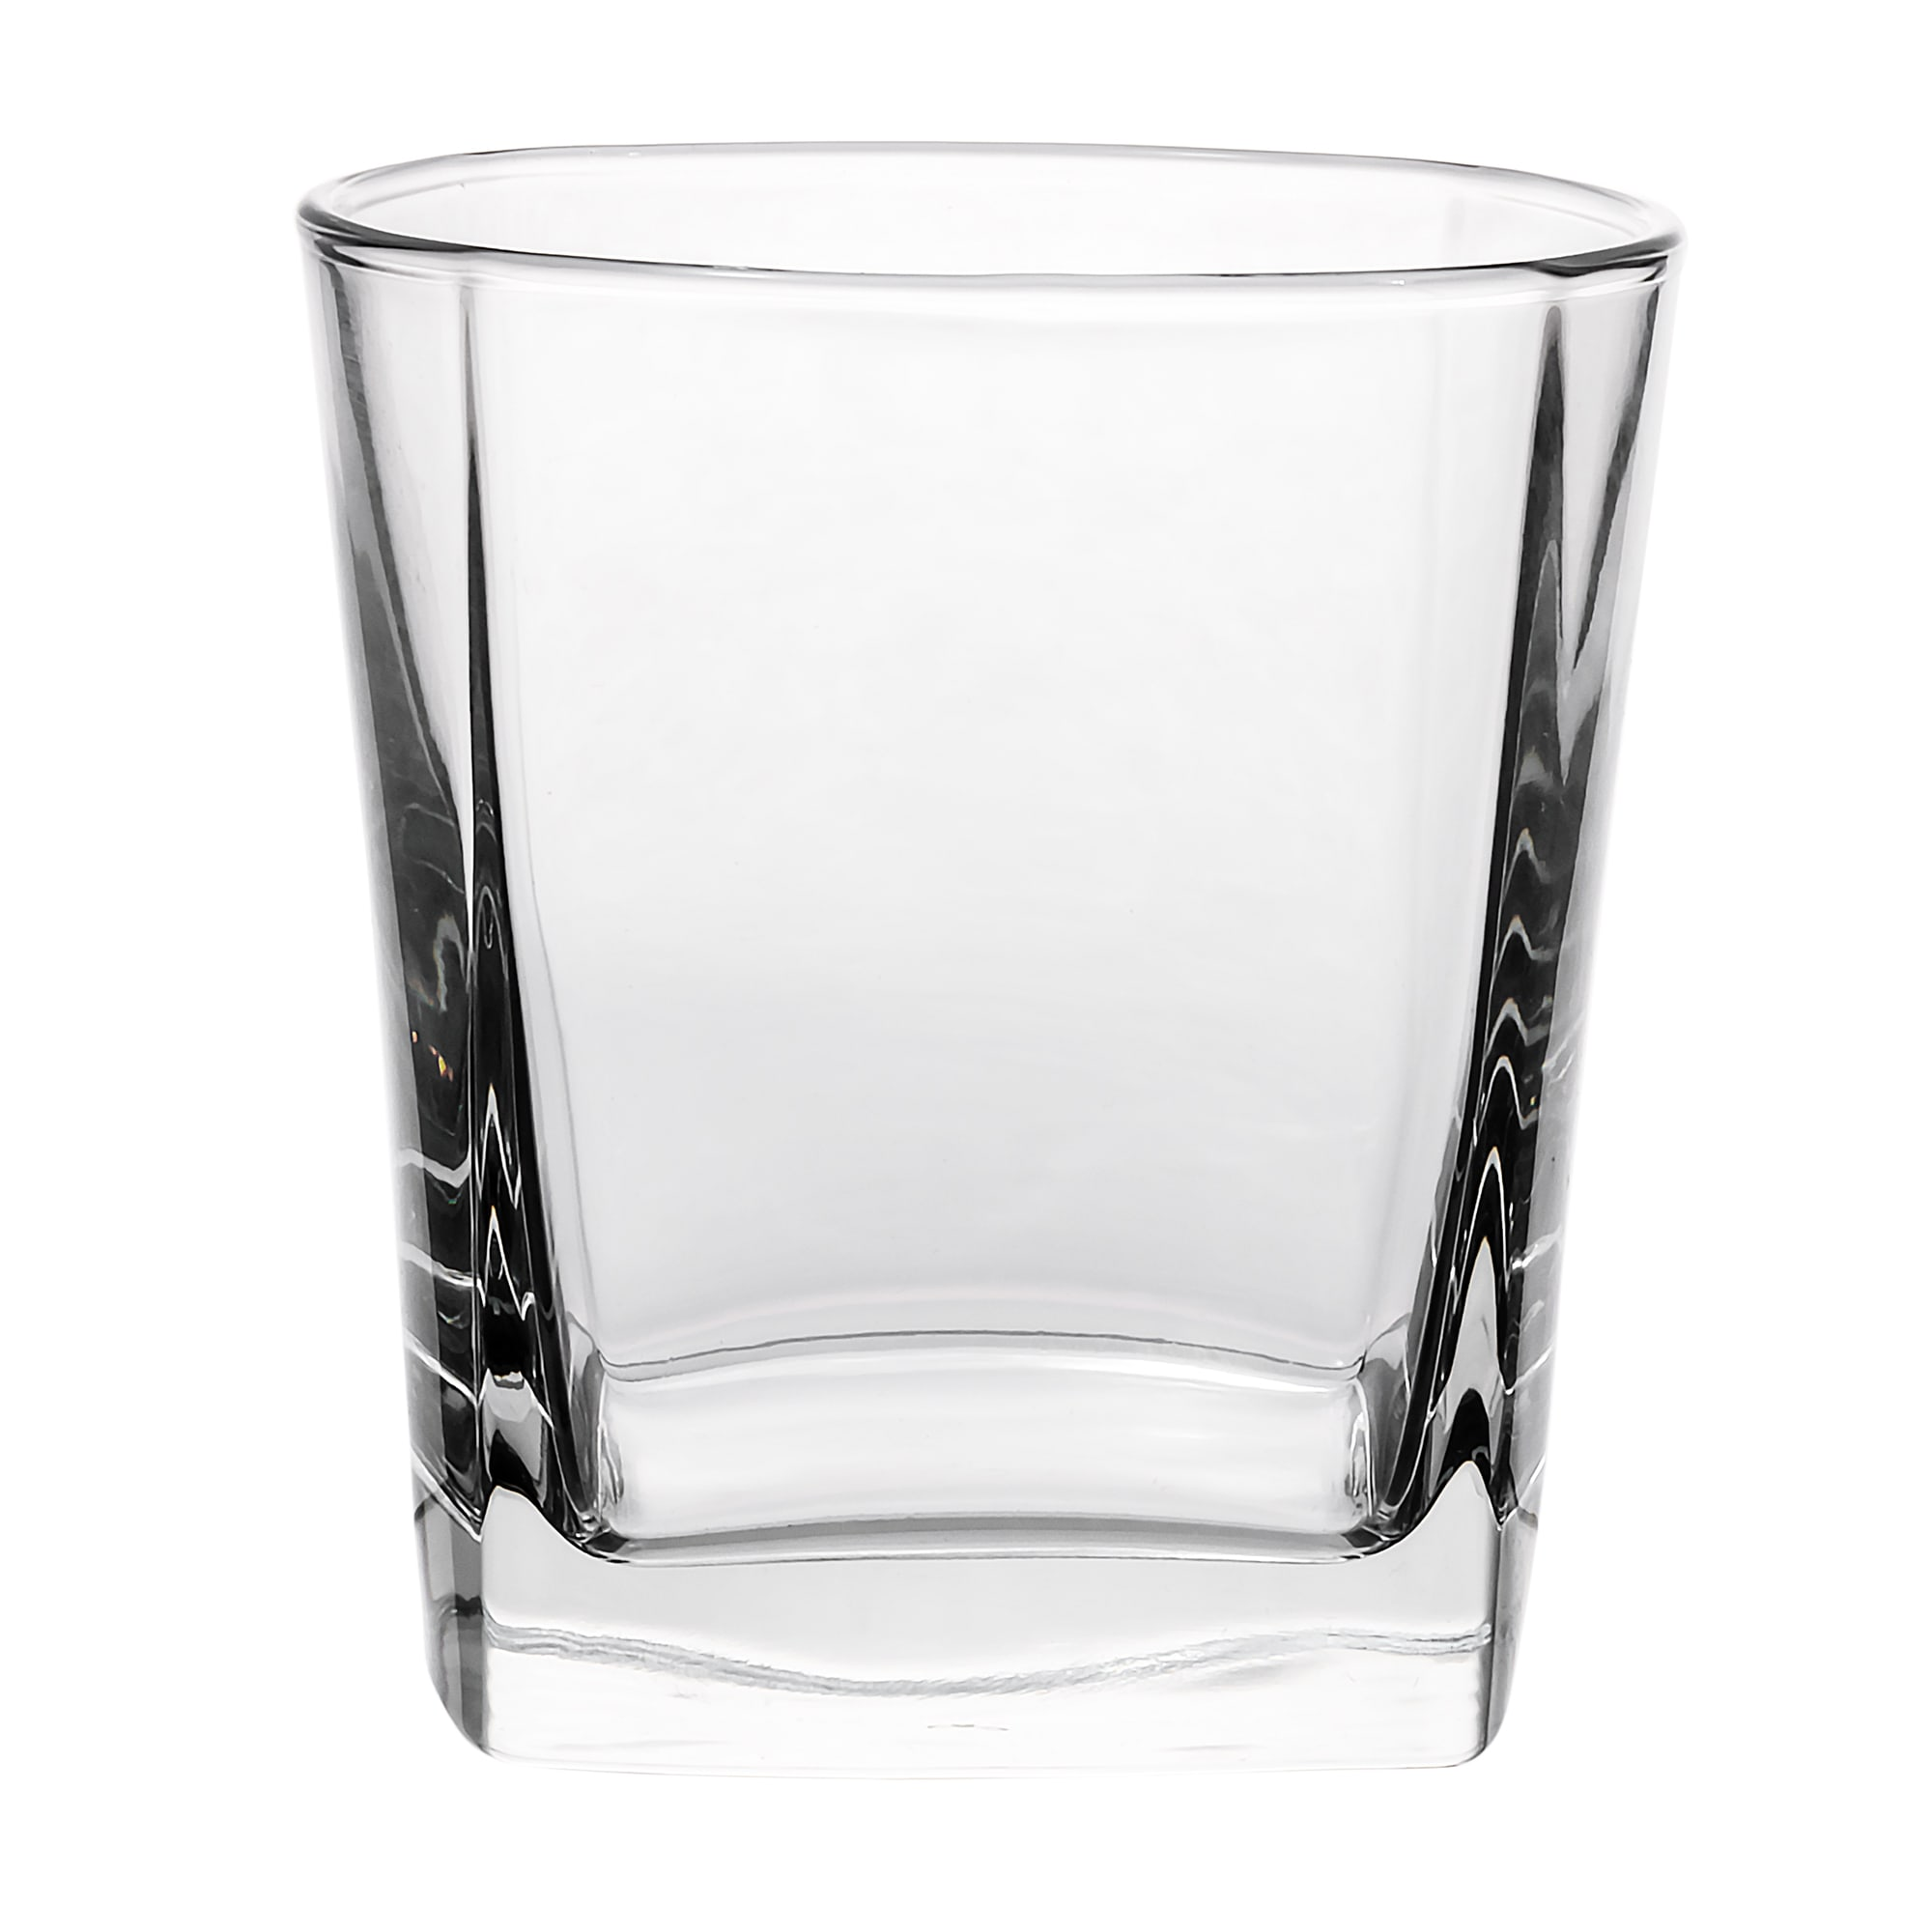 Libbey 2205 12 oz Double Old Fashioned Glass - Quartet, Square Base